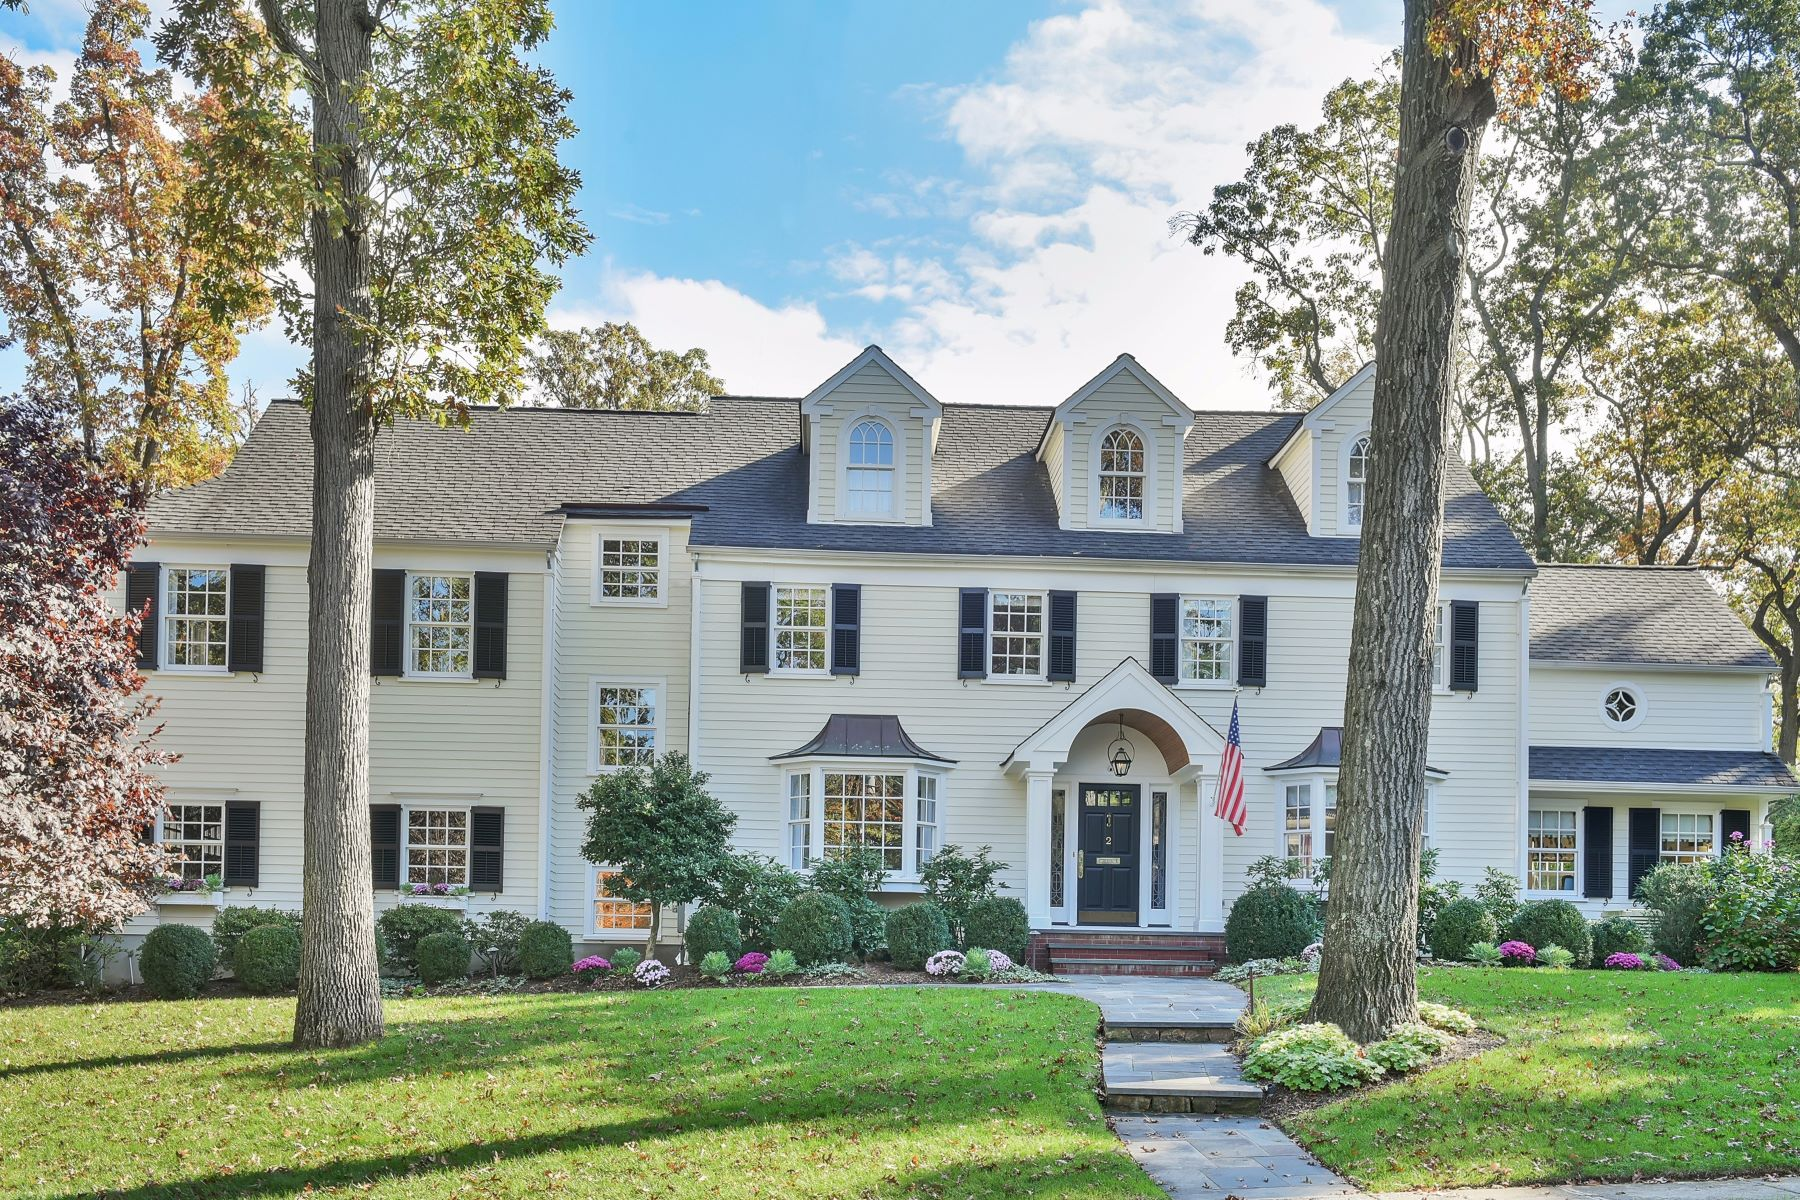 Casa Unifamiliar por un Venta en Beautiful Colonial 2 Surrey Road Summit, Nueva Jersey 07901 Estados Unidos